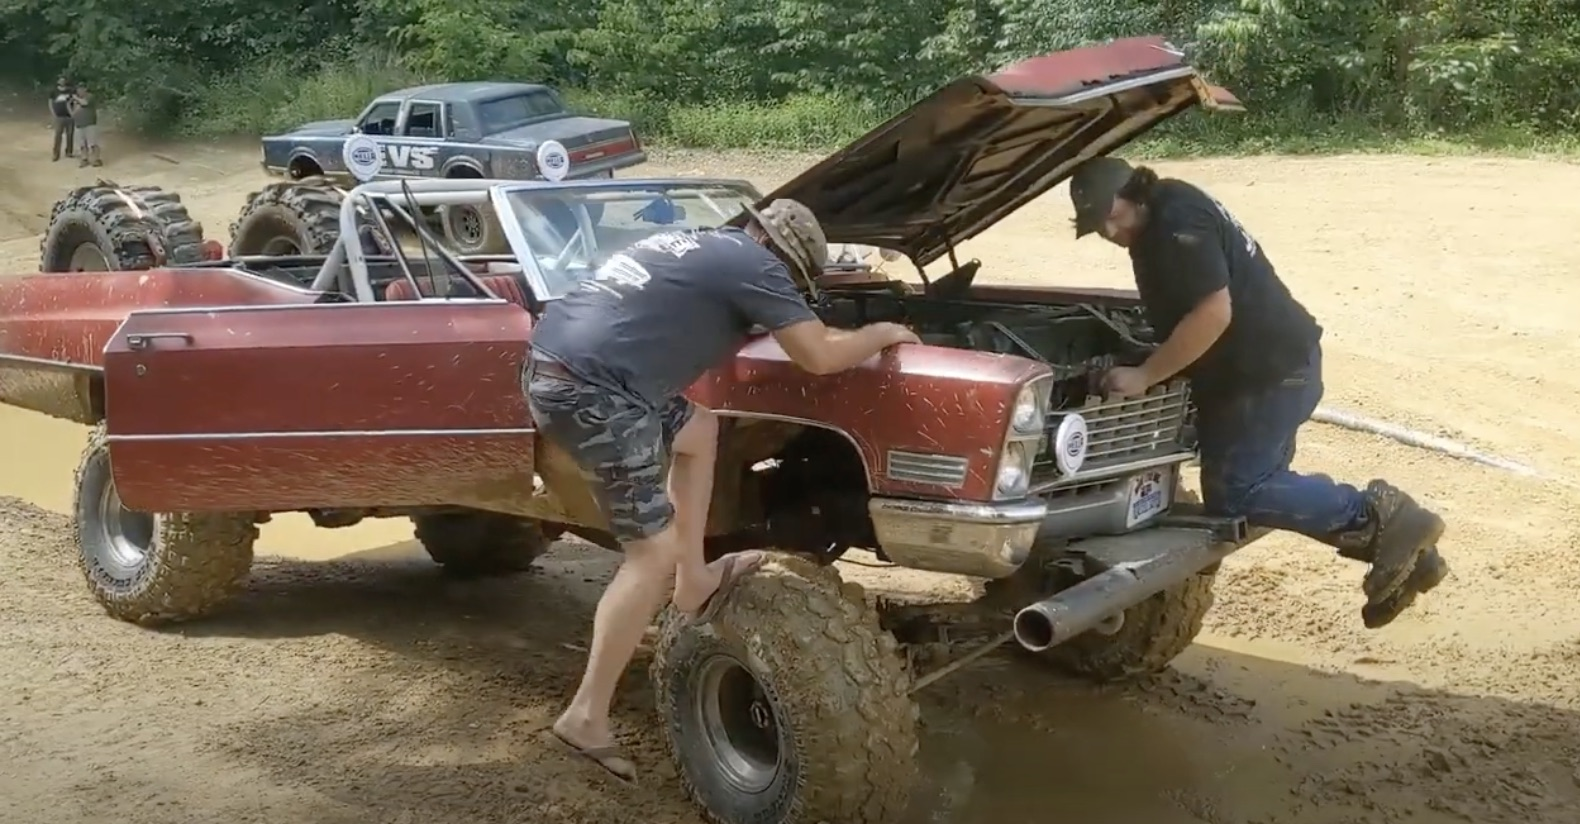 Behemoth Bogger: Off-Roading A Monster Cadillac Convertible Trar In The Woods